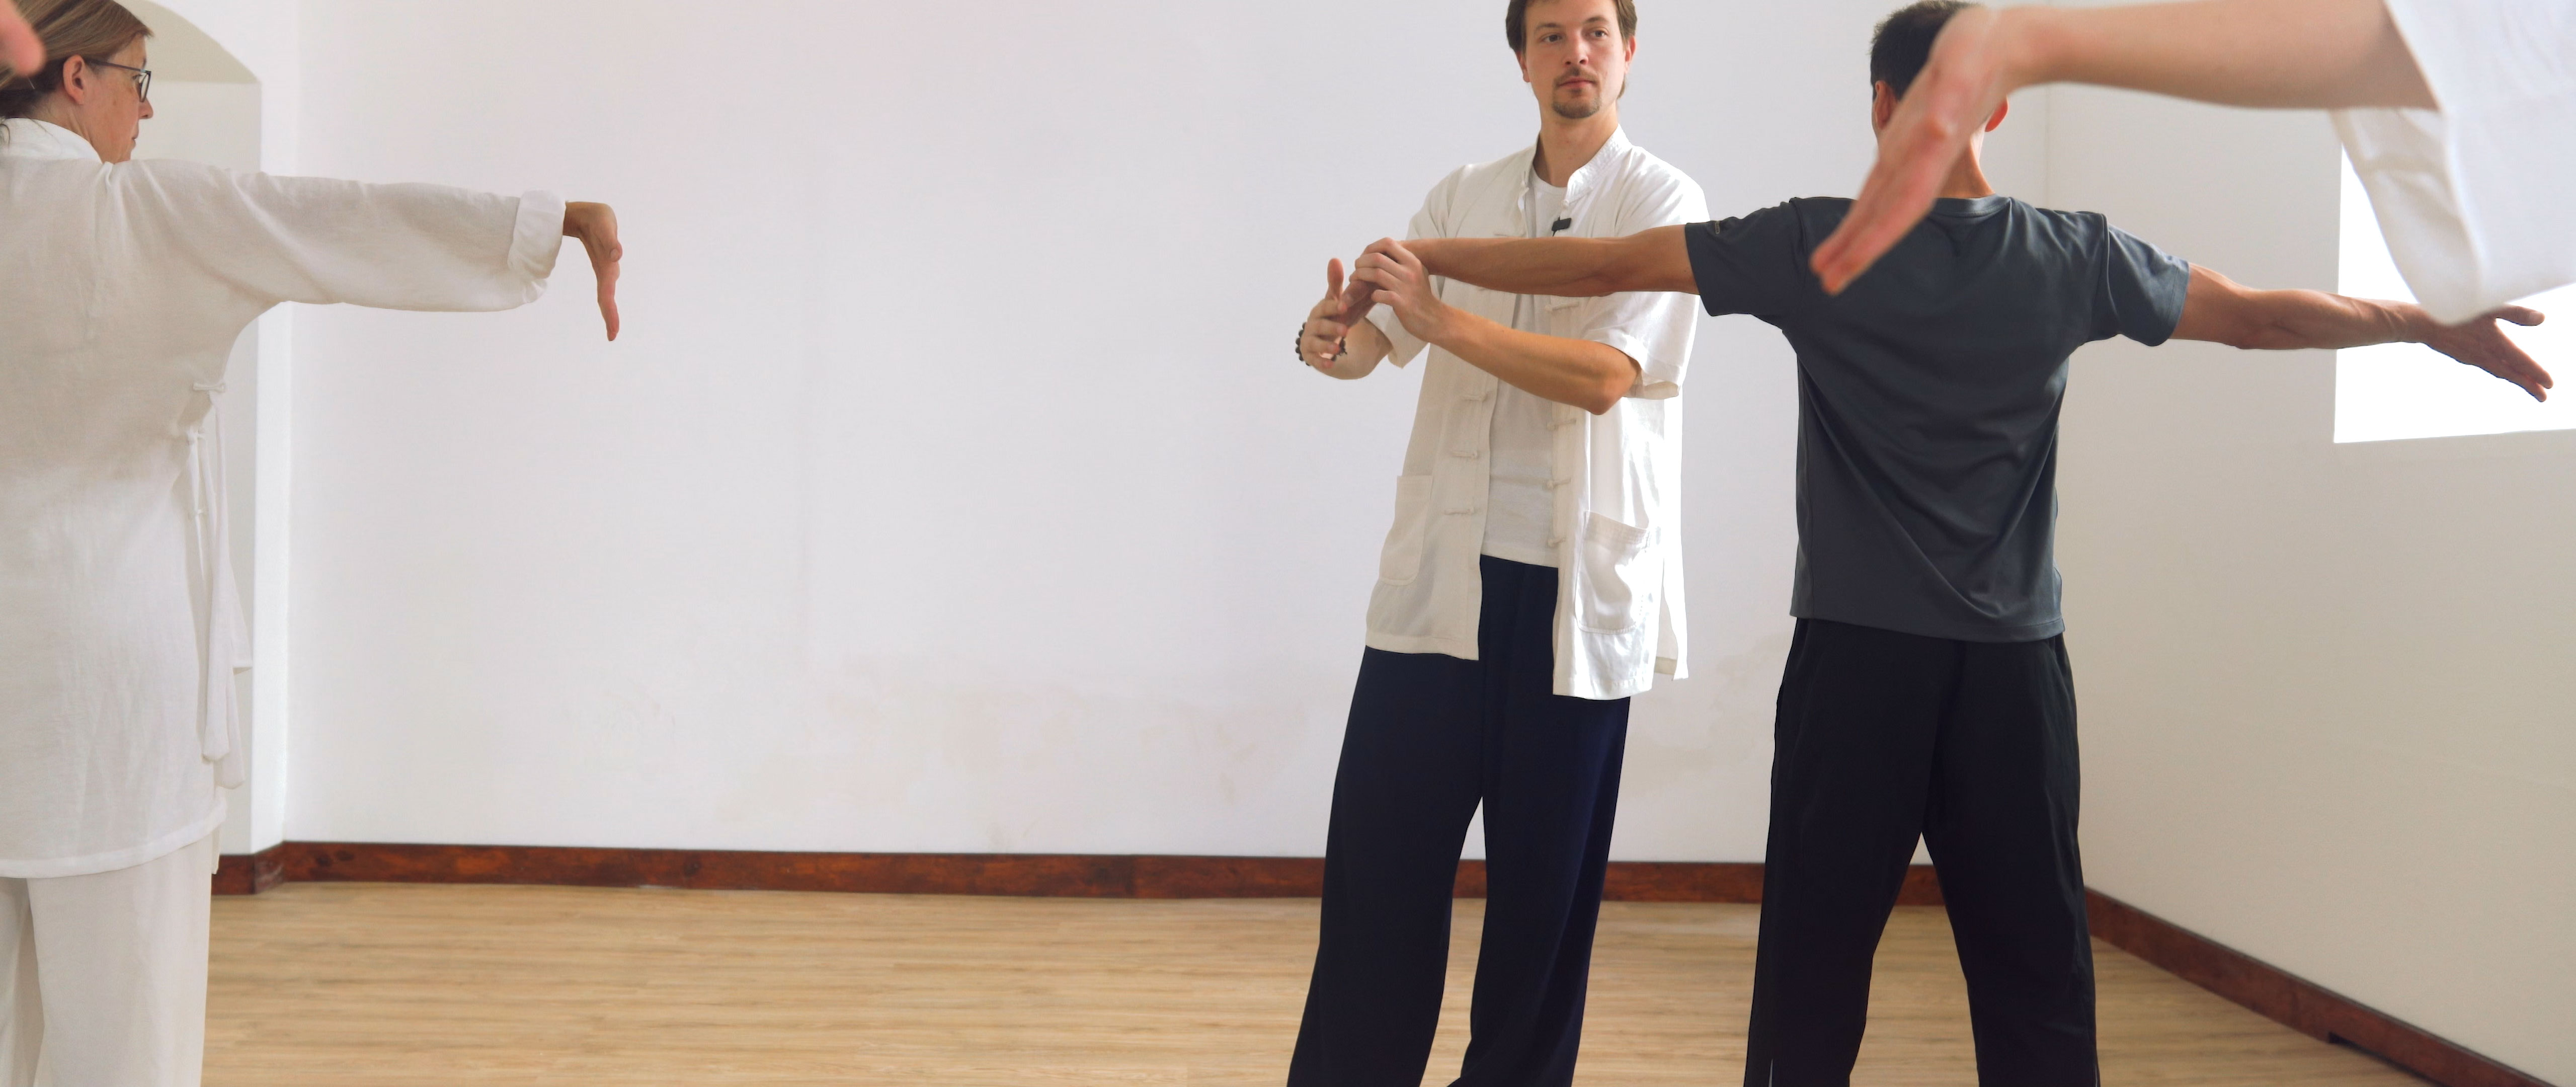 The Qi Gong Opening of Sanfengpai – Indepth Explained